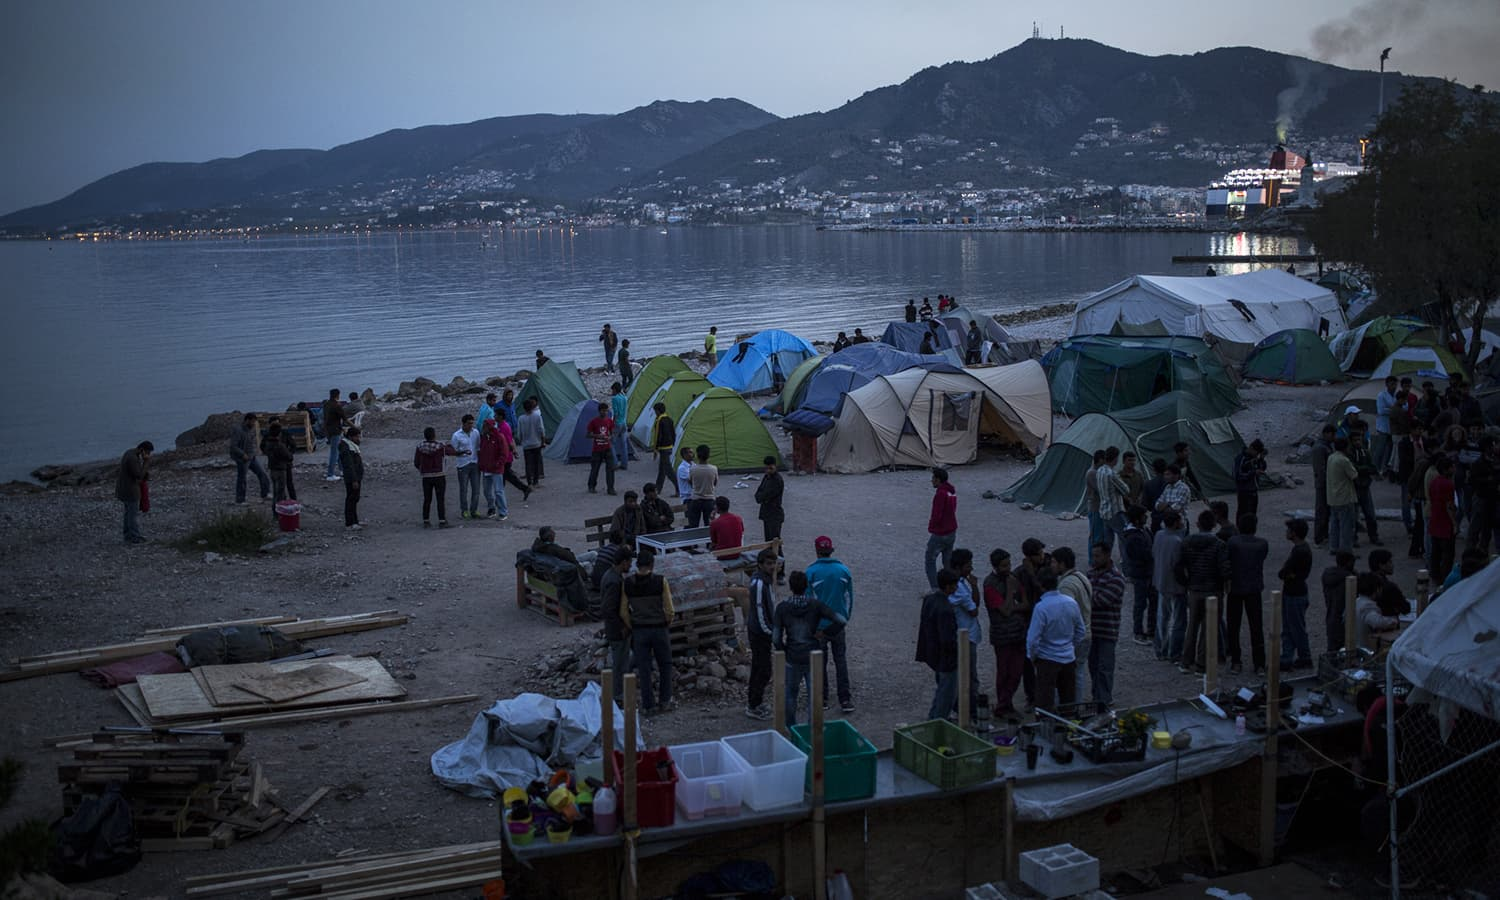 Between 300 and 400 people, mostly Pakistani, are camping on the beach on the Greek island of Lesbos at the No Borders Kitchen.